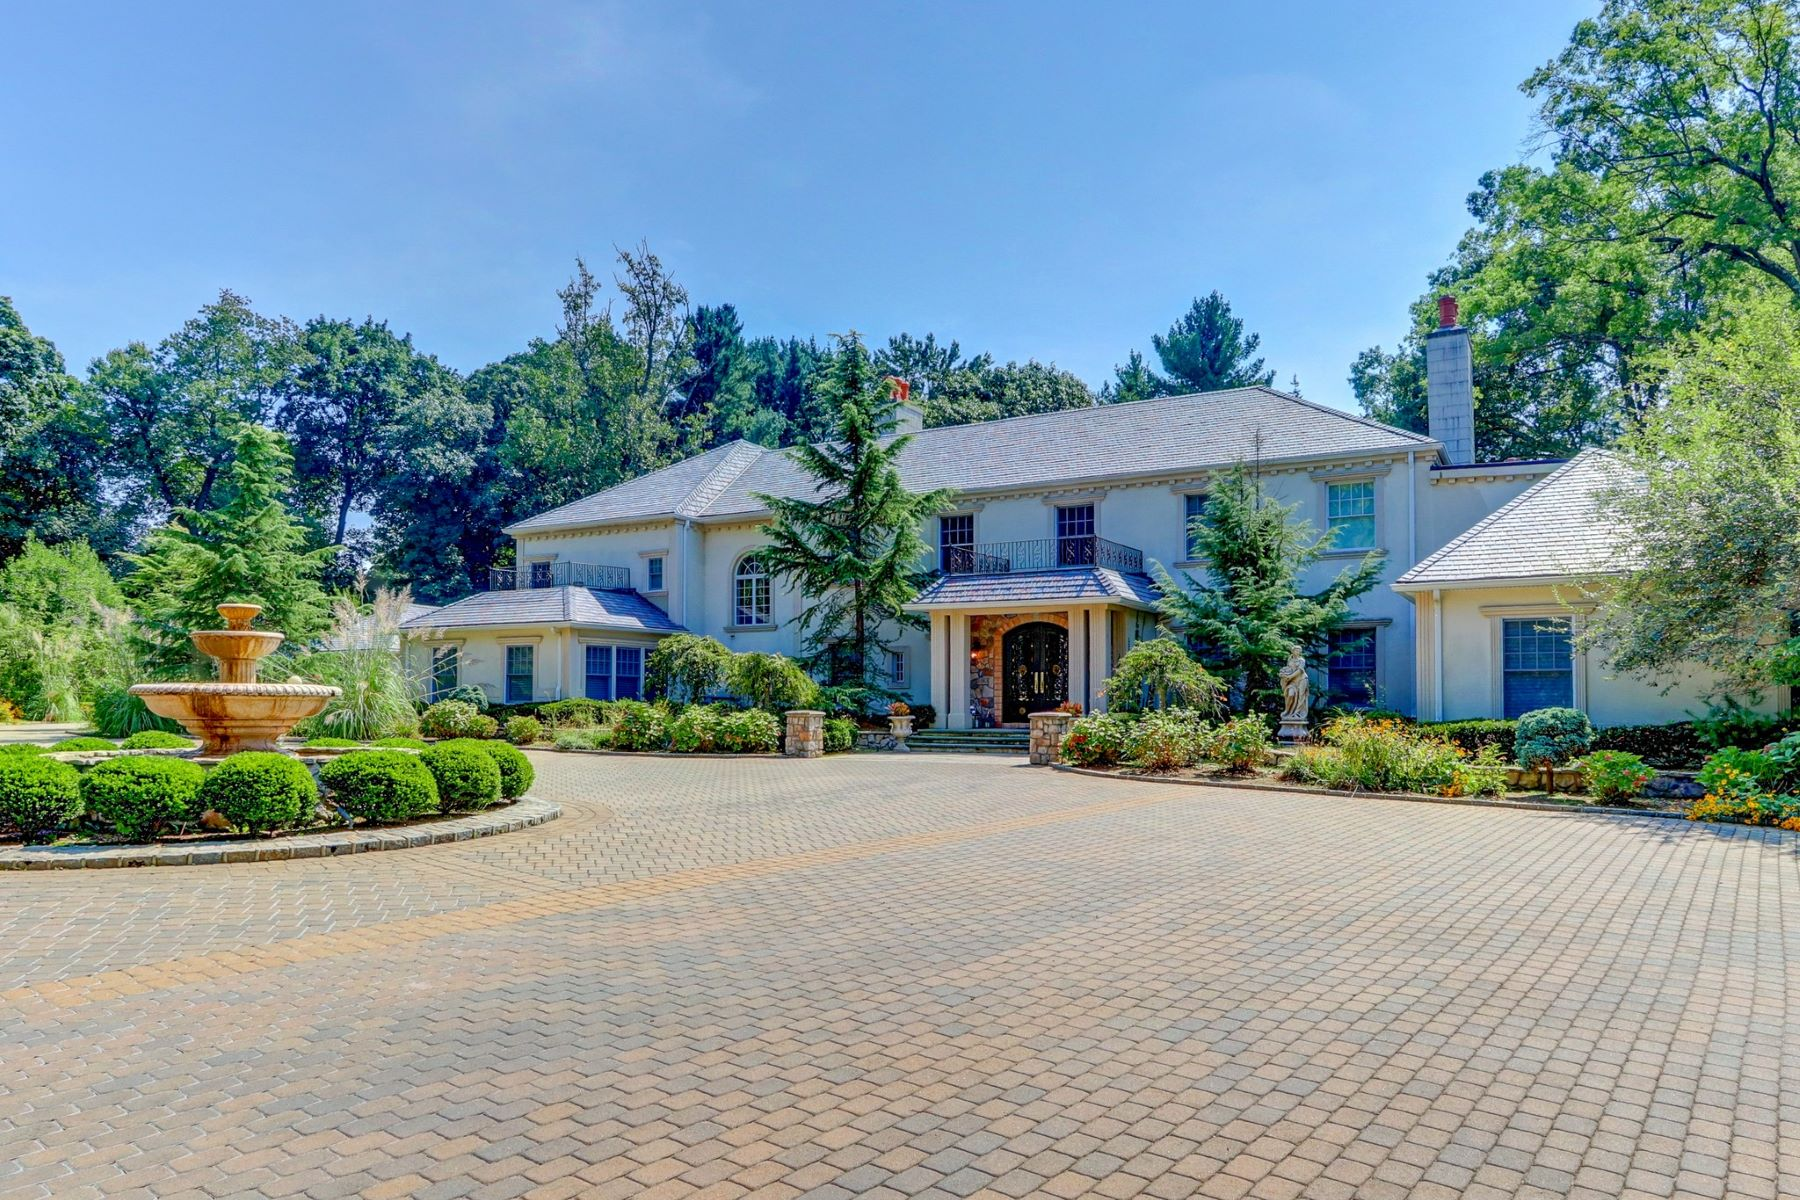 Single Family Homes for Sale at Old Westbury 75 Bacon Road Old Westbury, New York 11568 United States